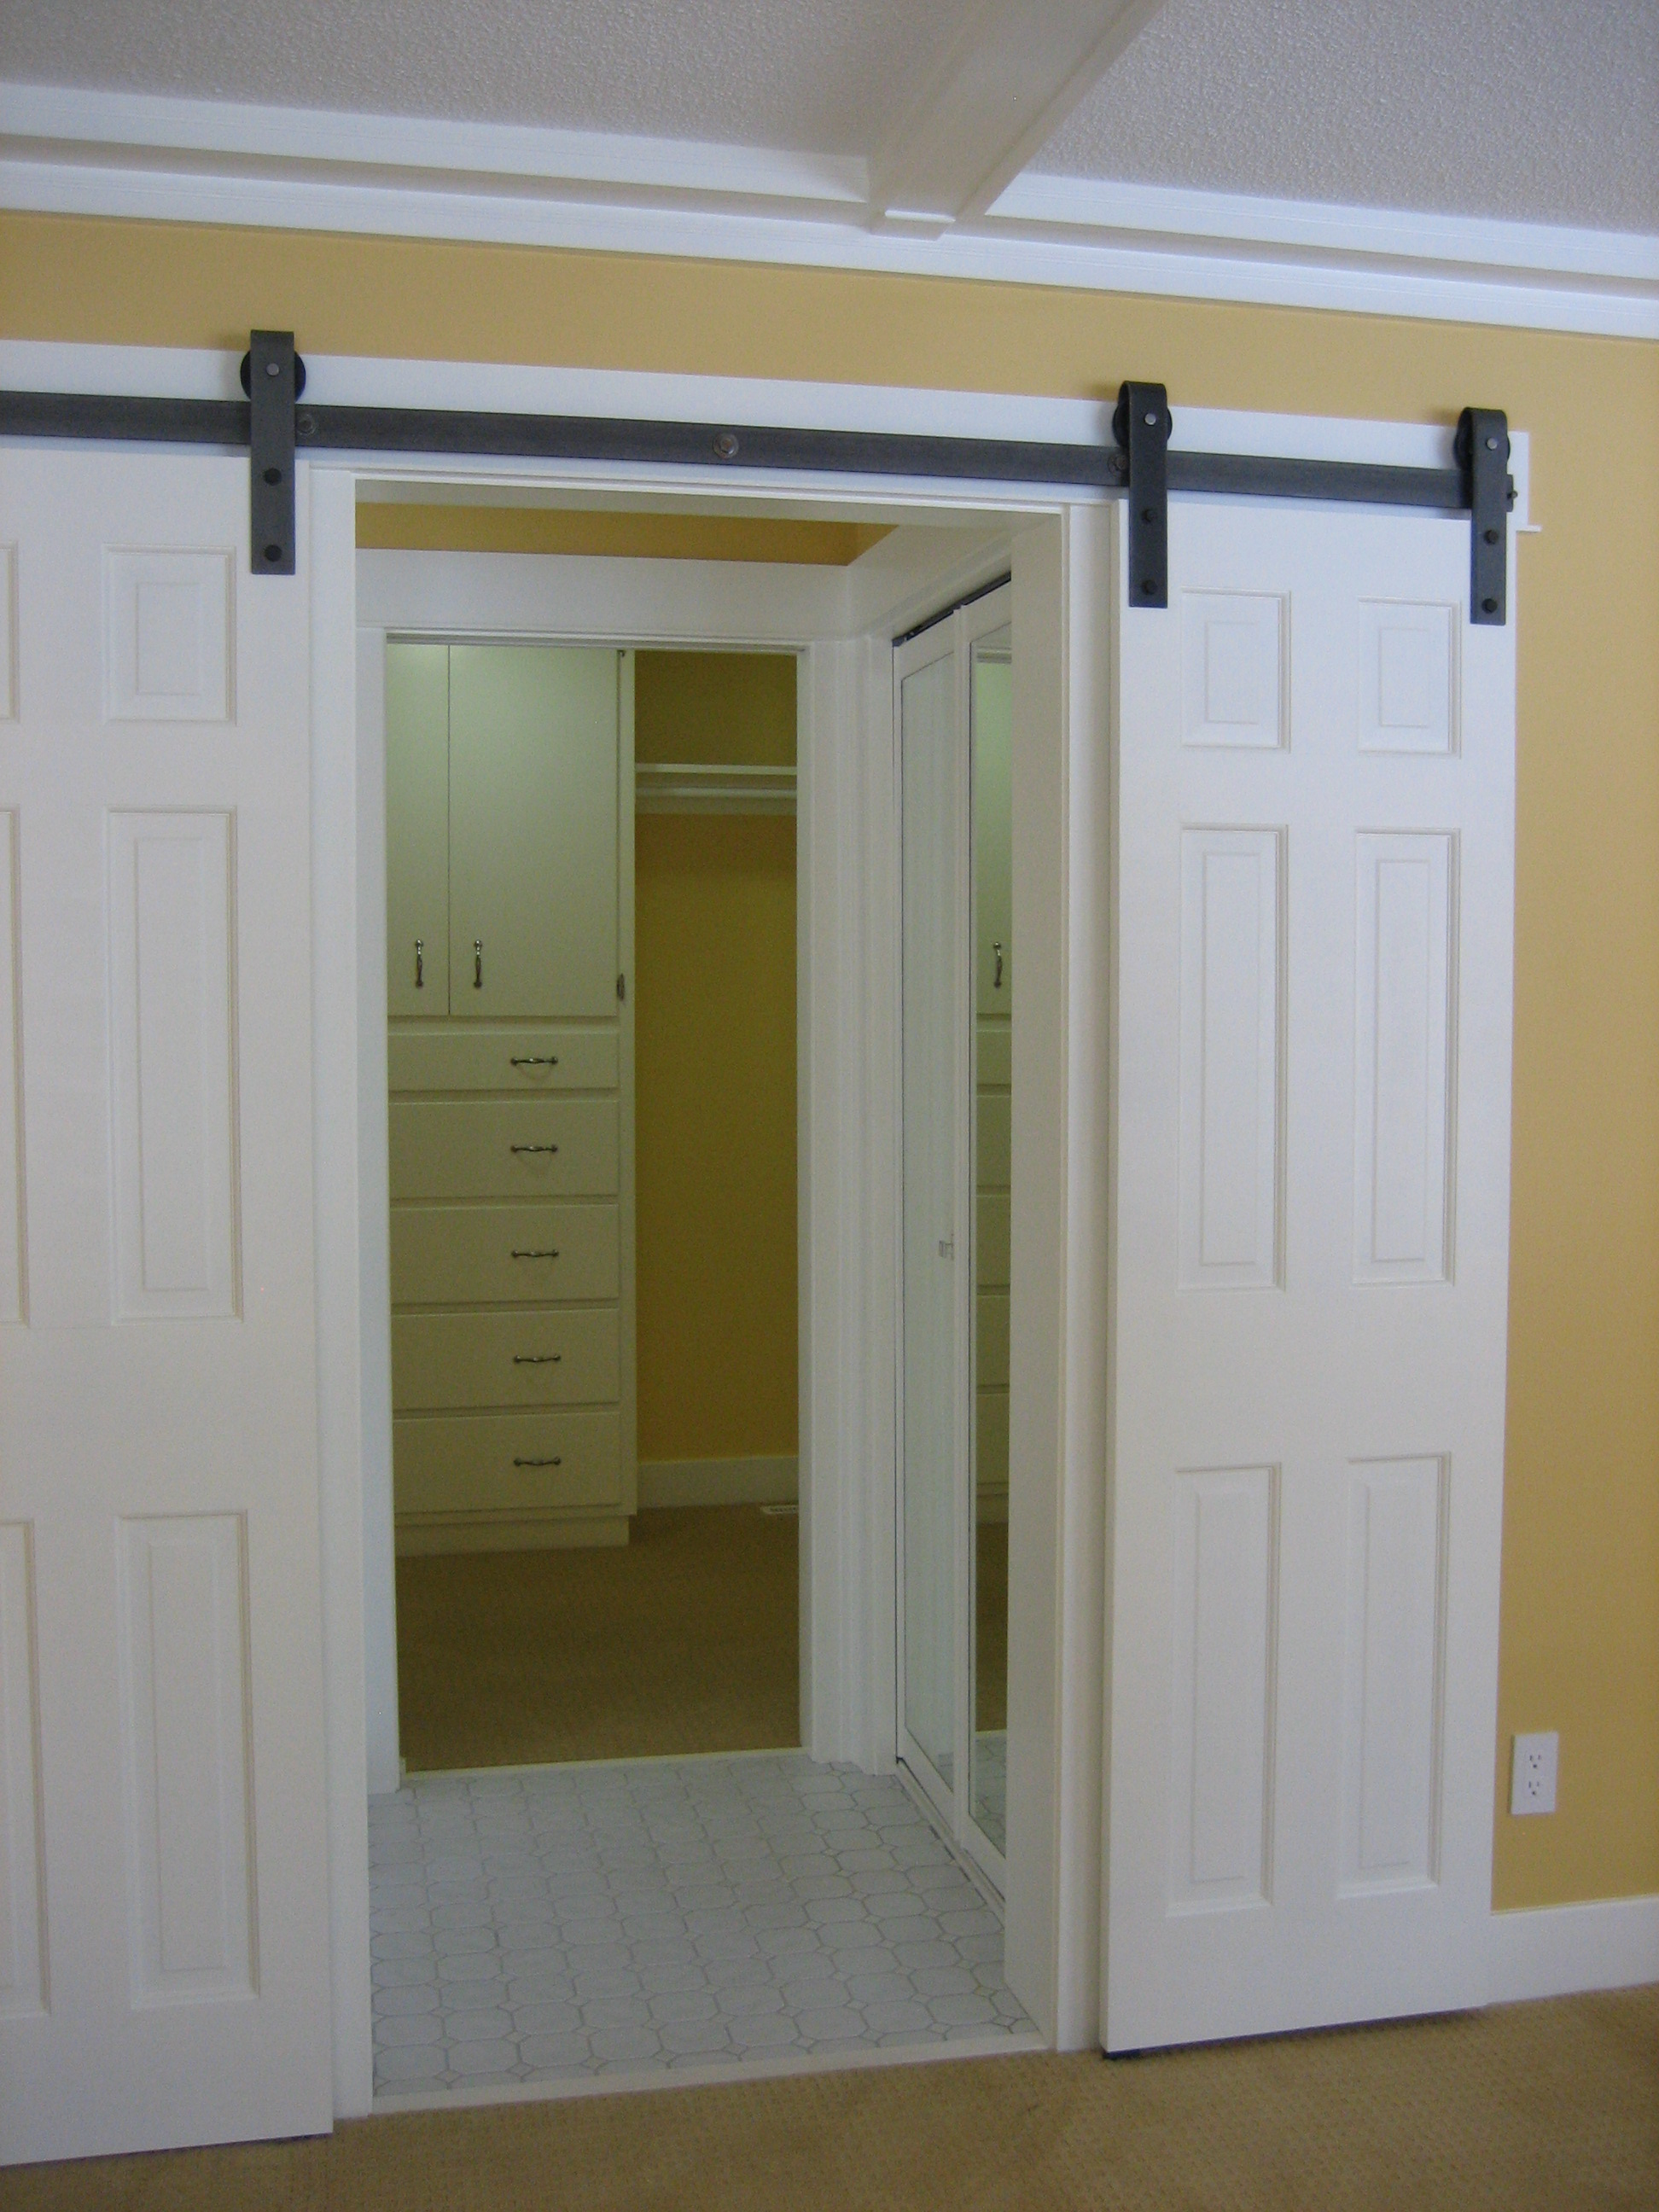 10 Sliding interior doors  a practical and stylish alternative for all types of homes